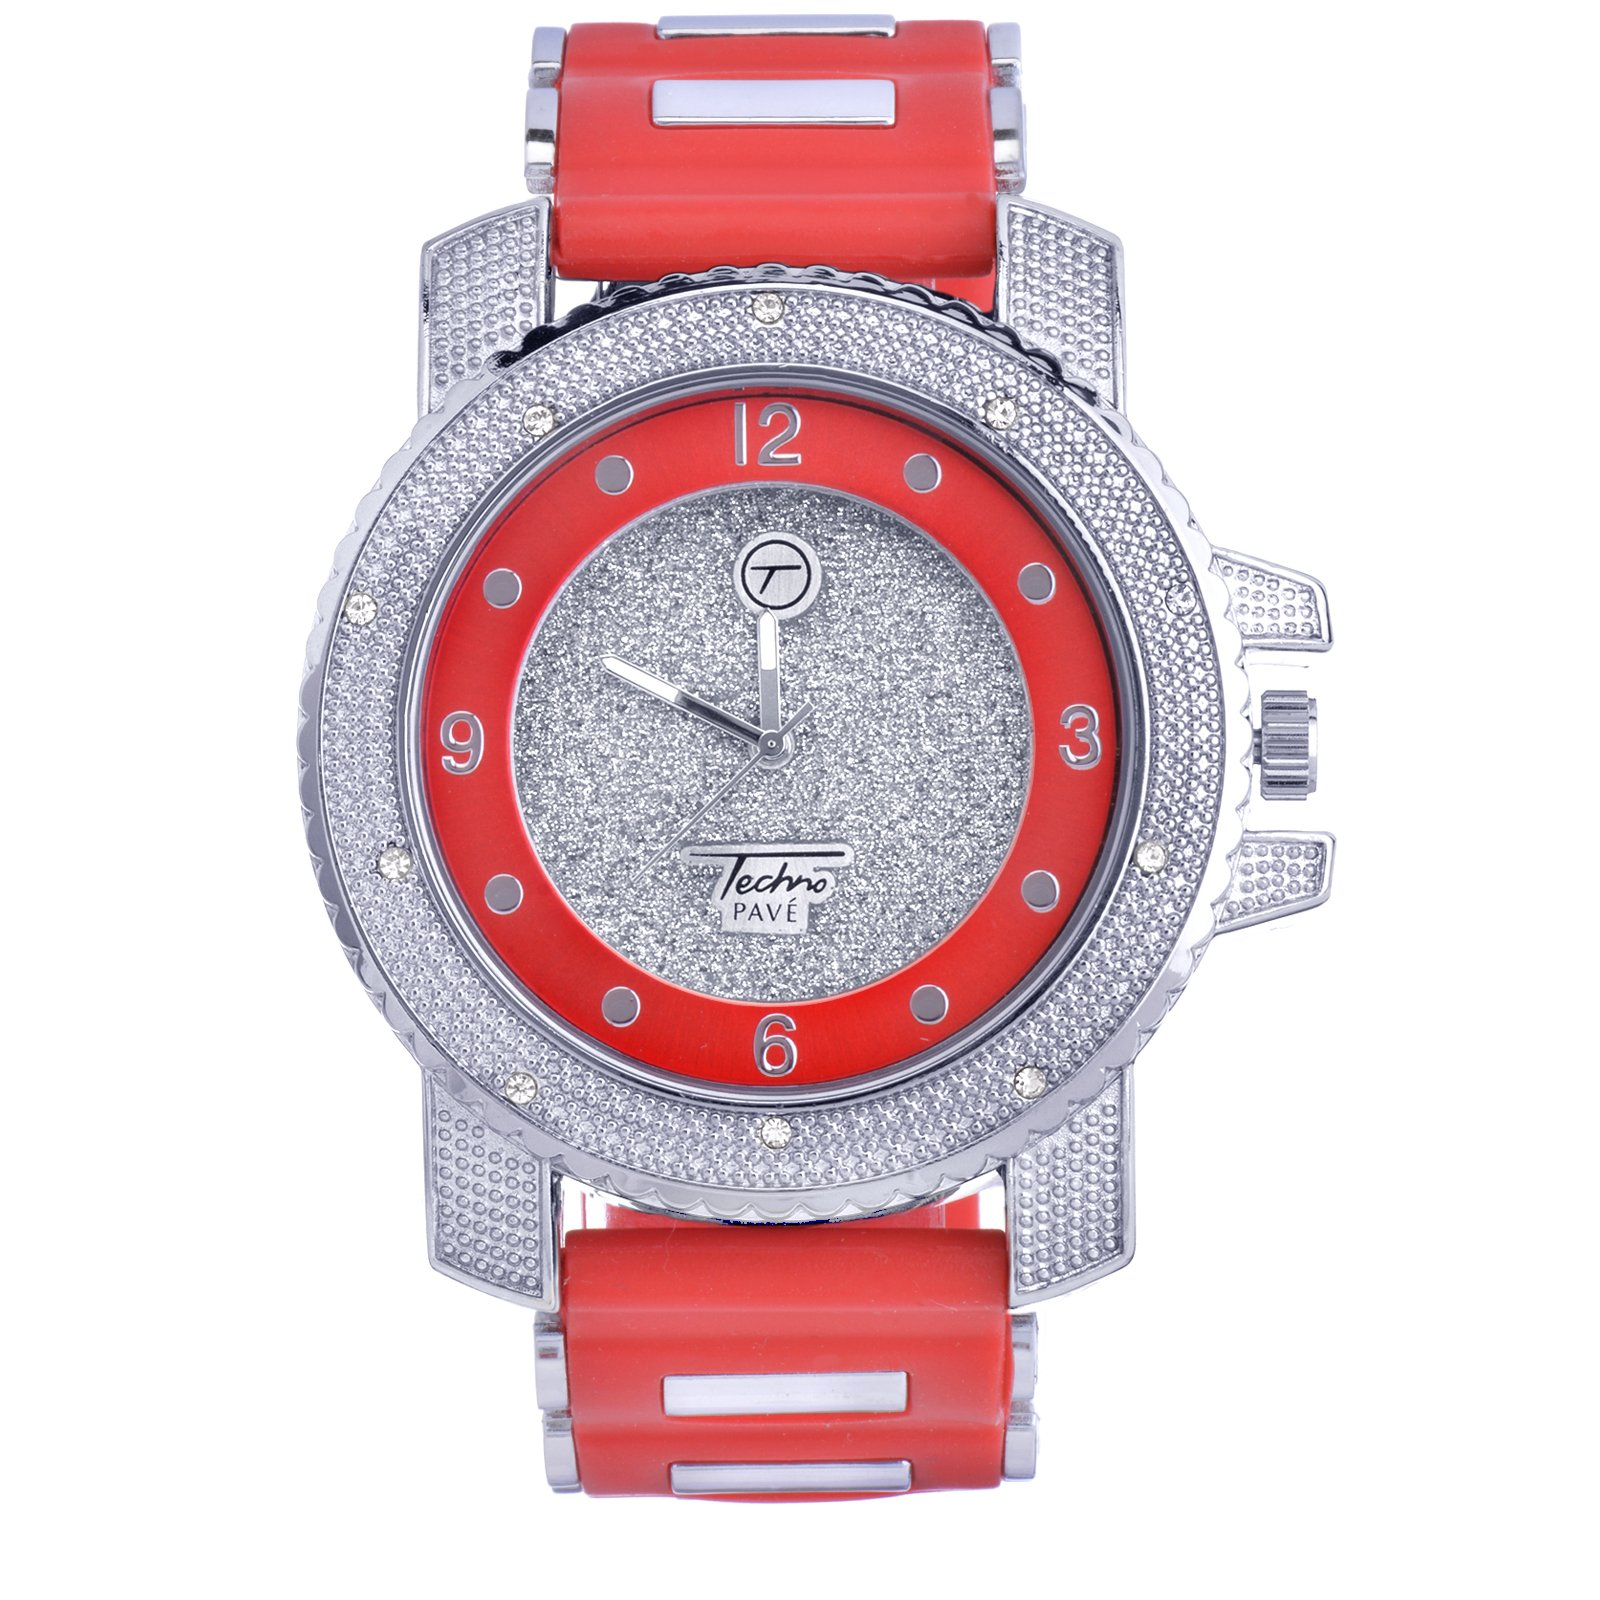 Rapper Hip Hop Silver Plated Diamond Simulated Techno Pave Watch 7758 SRD